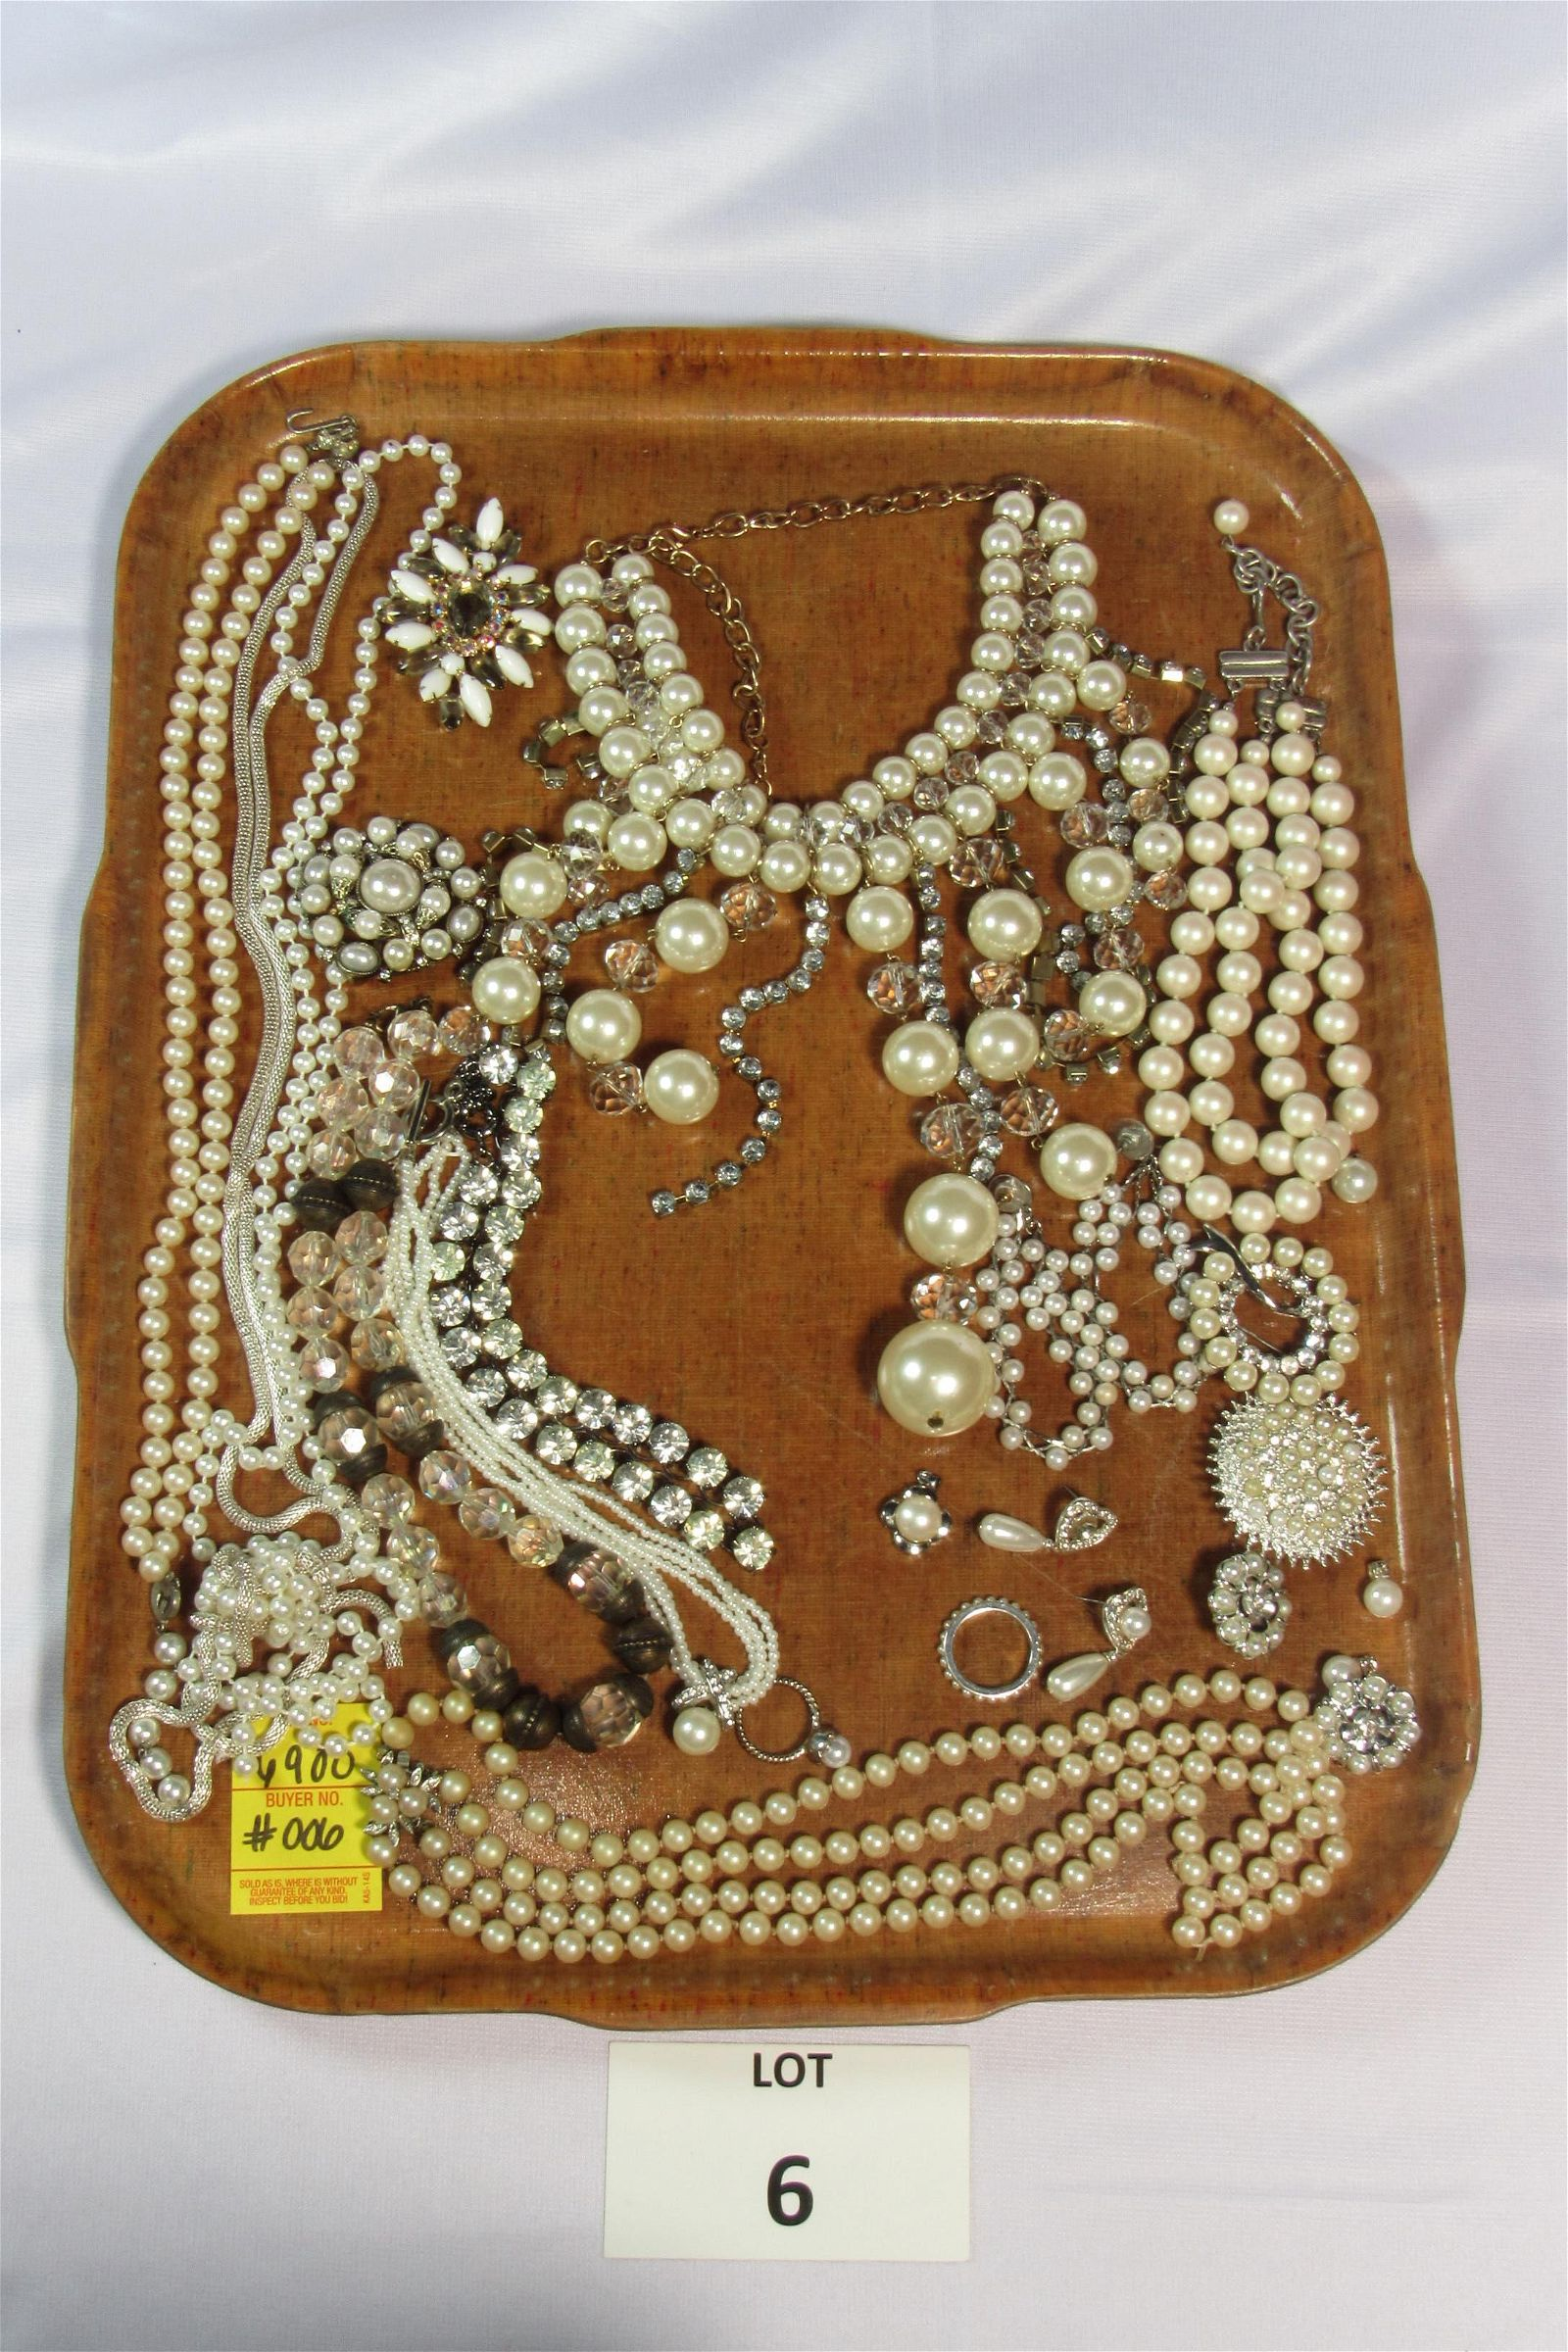 Lot of Elegant Pearl and Silver Tone Costume Jewelry